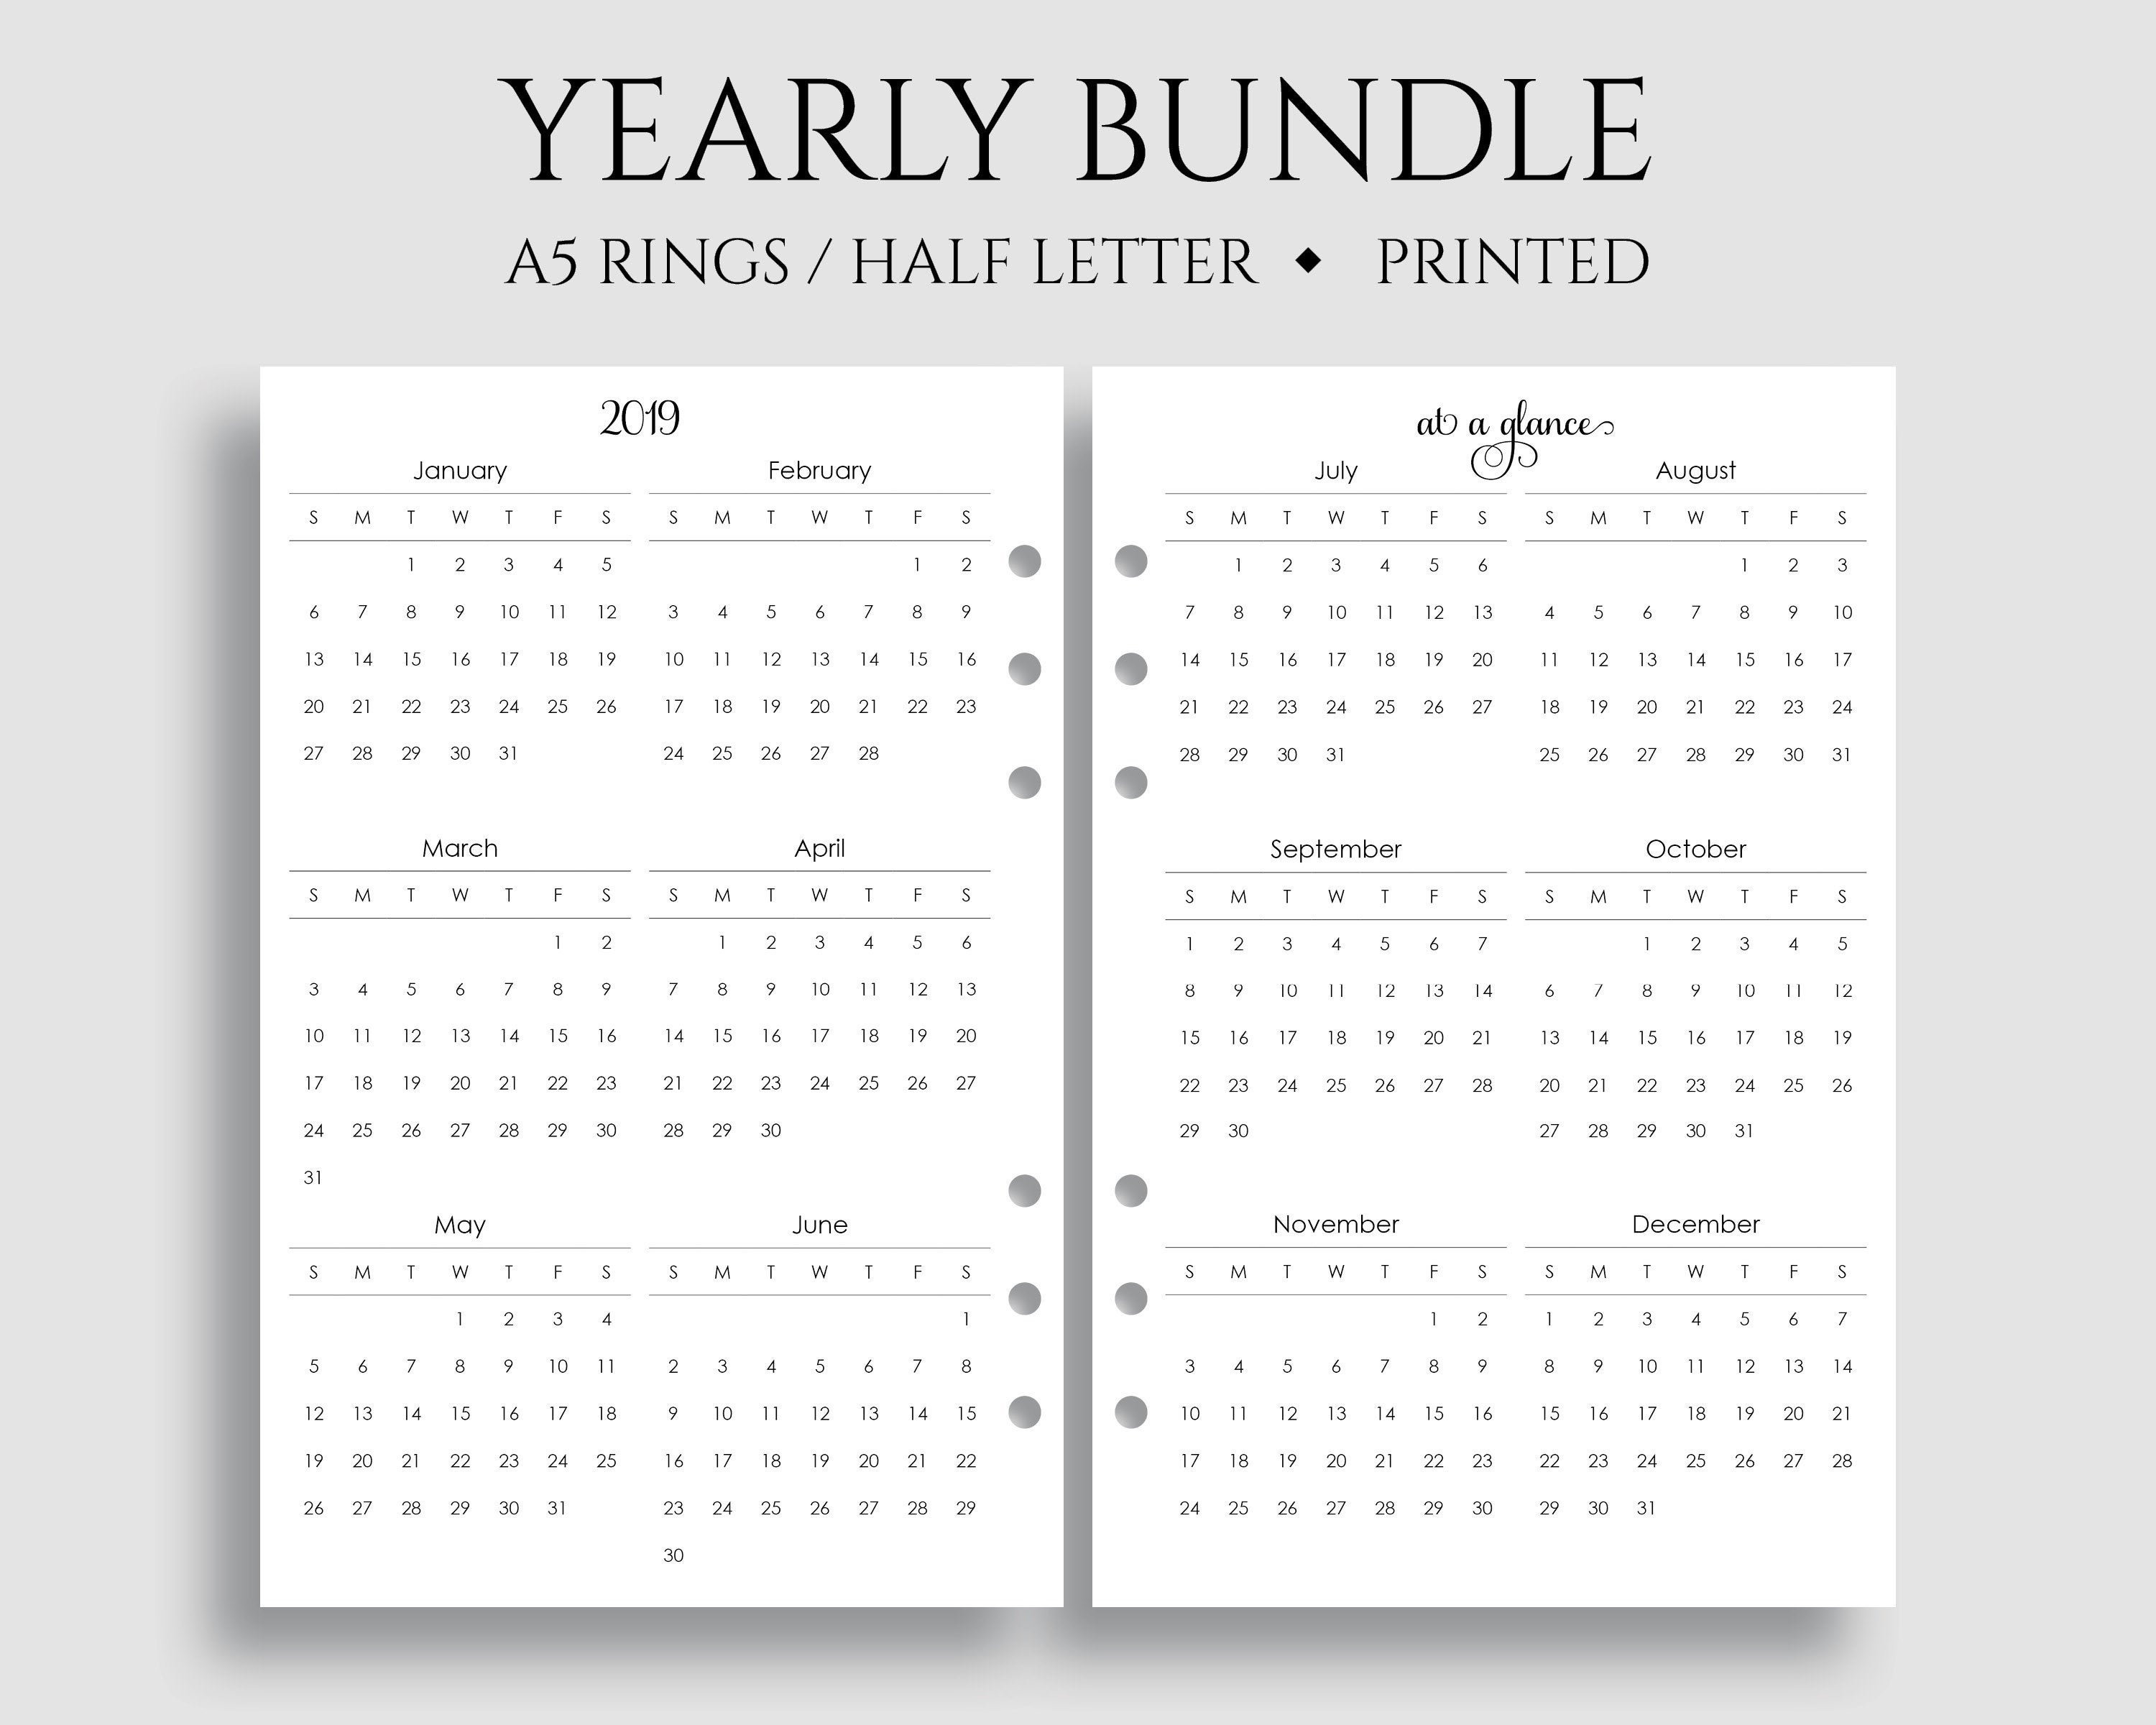 """Yearly Calendar Bundle, 2019 And 2020 Year-At-A-Glance, Dates To Remember,  U.s. Holidays ~ A5 Rings, Half Letter Size / 5.5"""" X 8.5"""" with 11 X 8.5 Calendar Pages 2020 Free"""